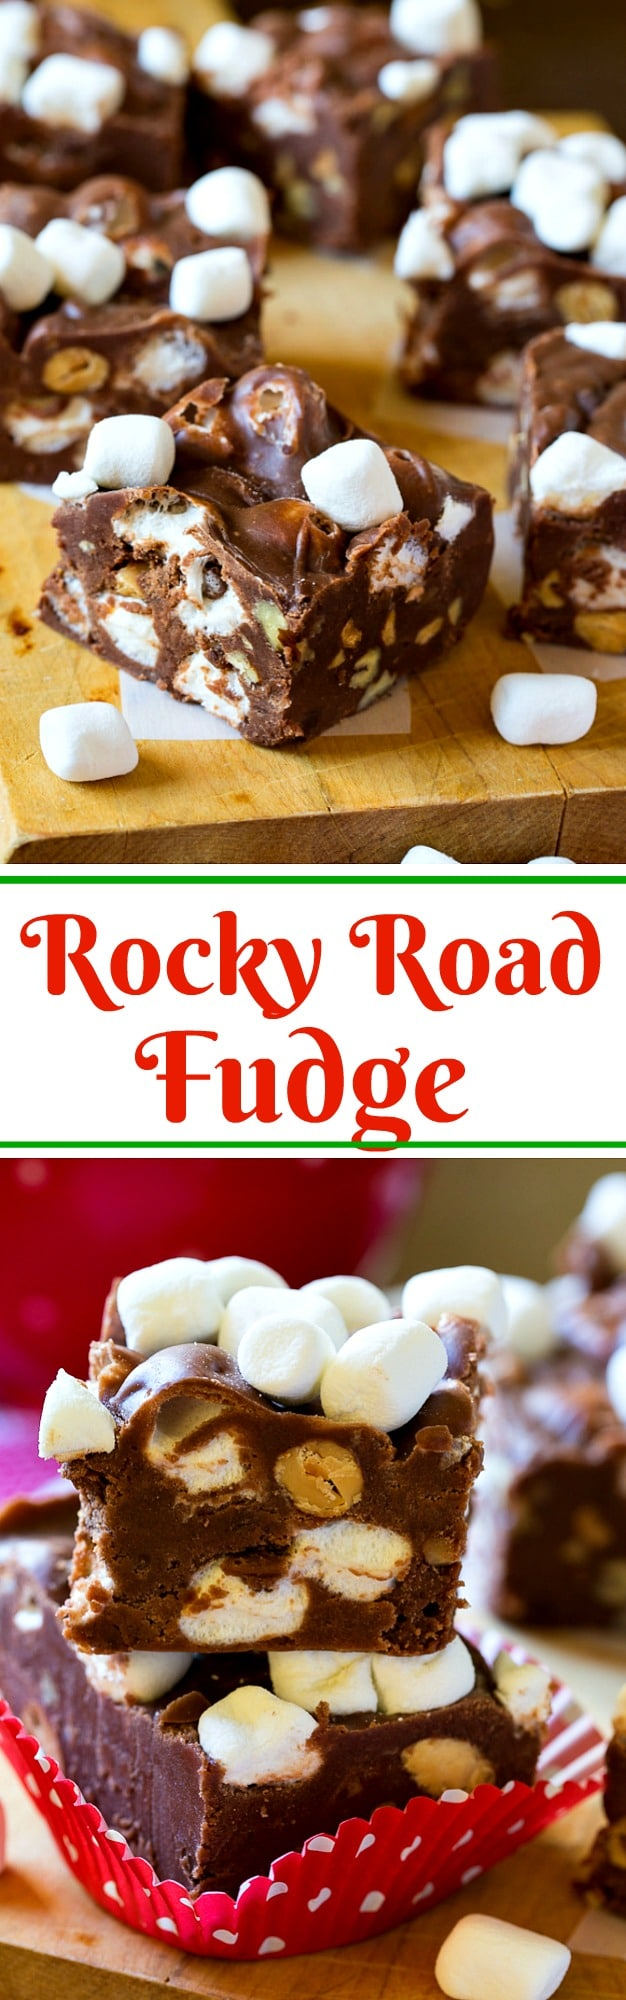 Rocky Road Fudge with marshmallows and almonds.